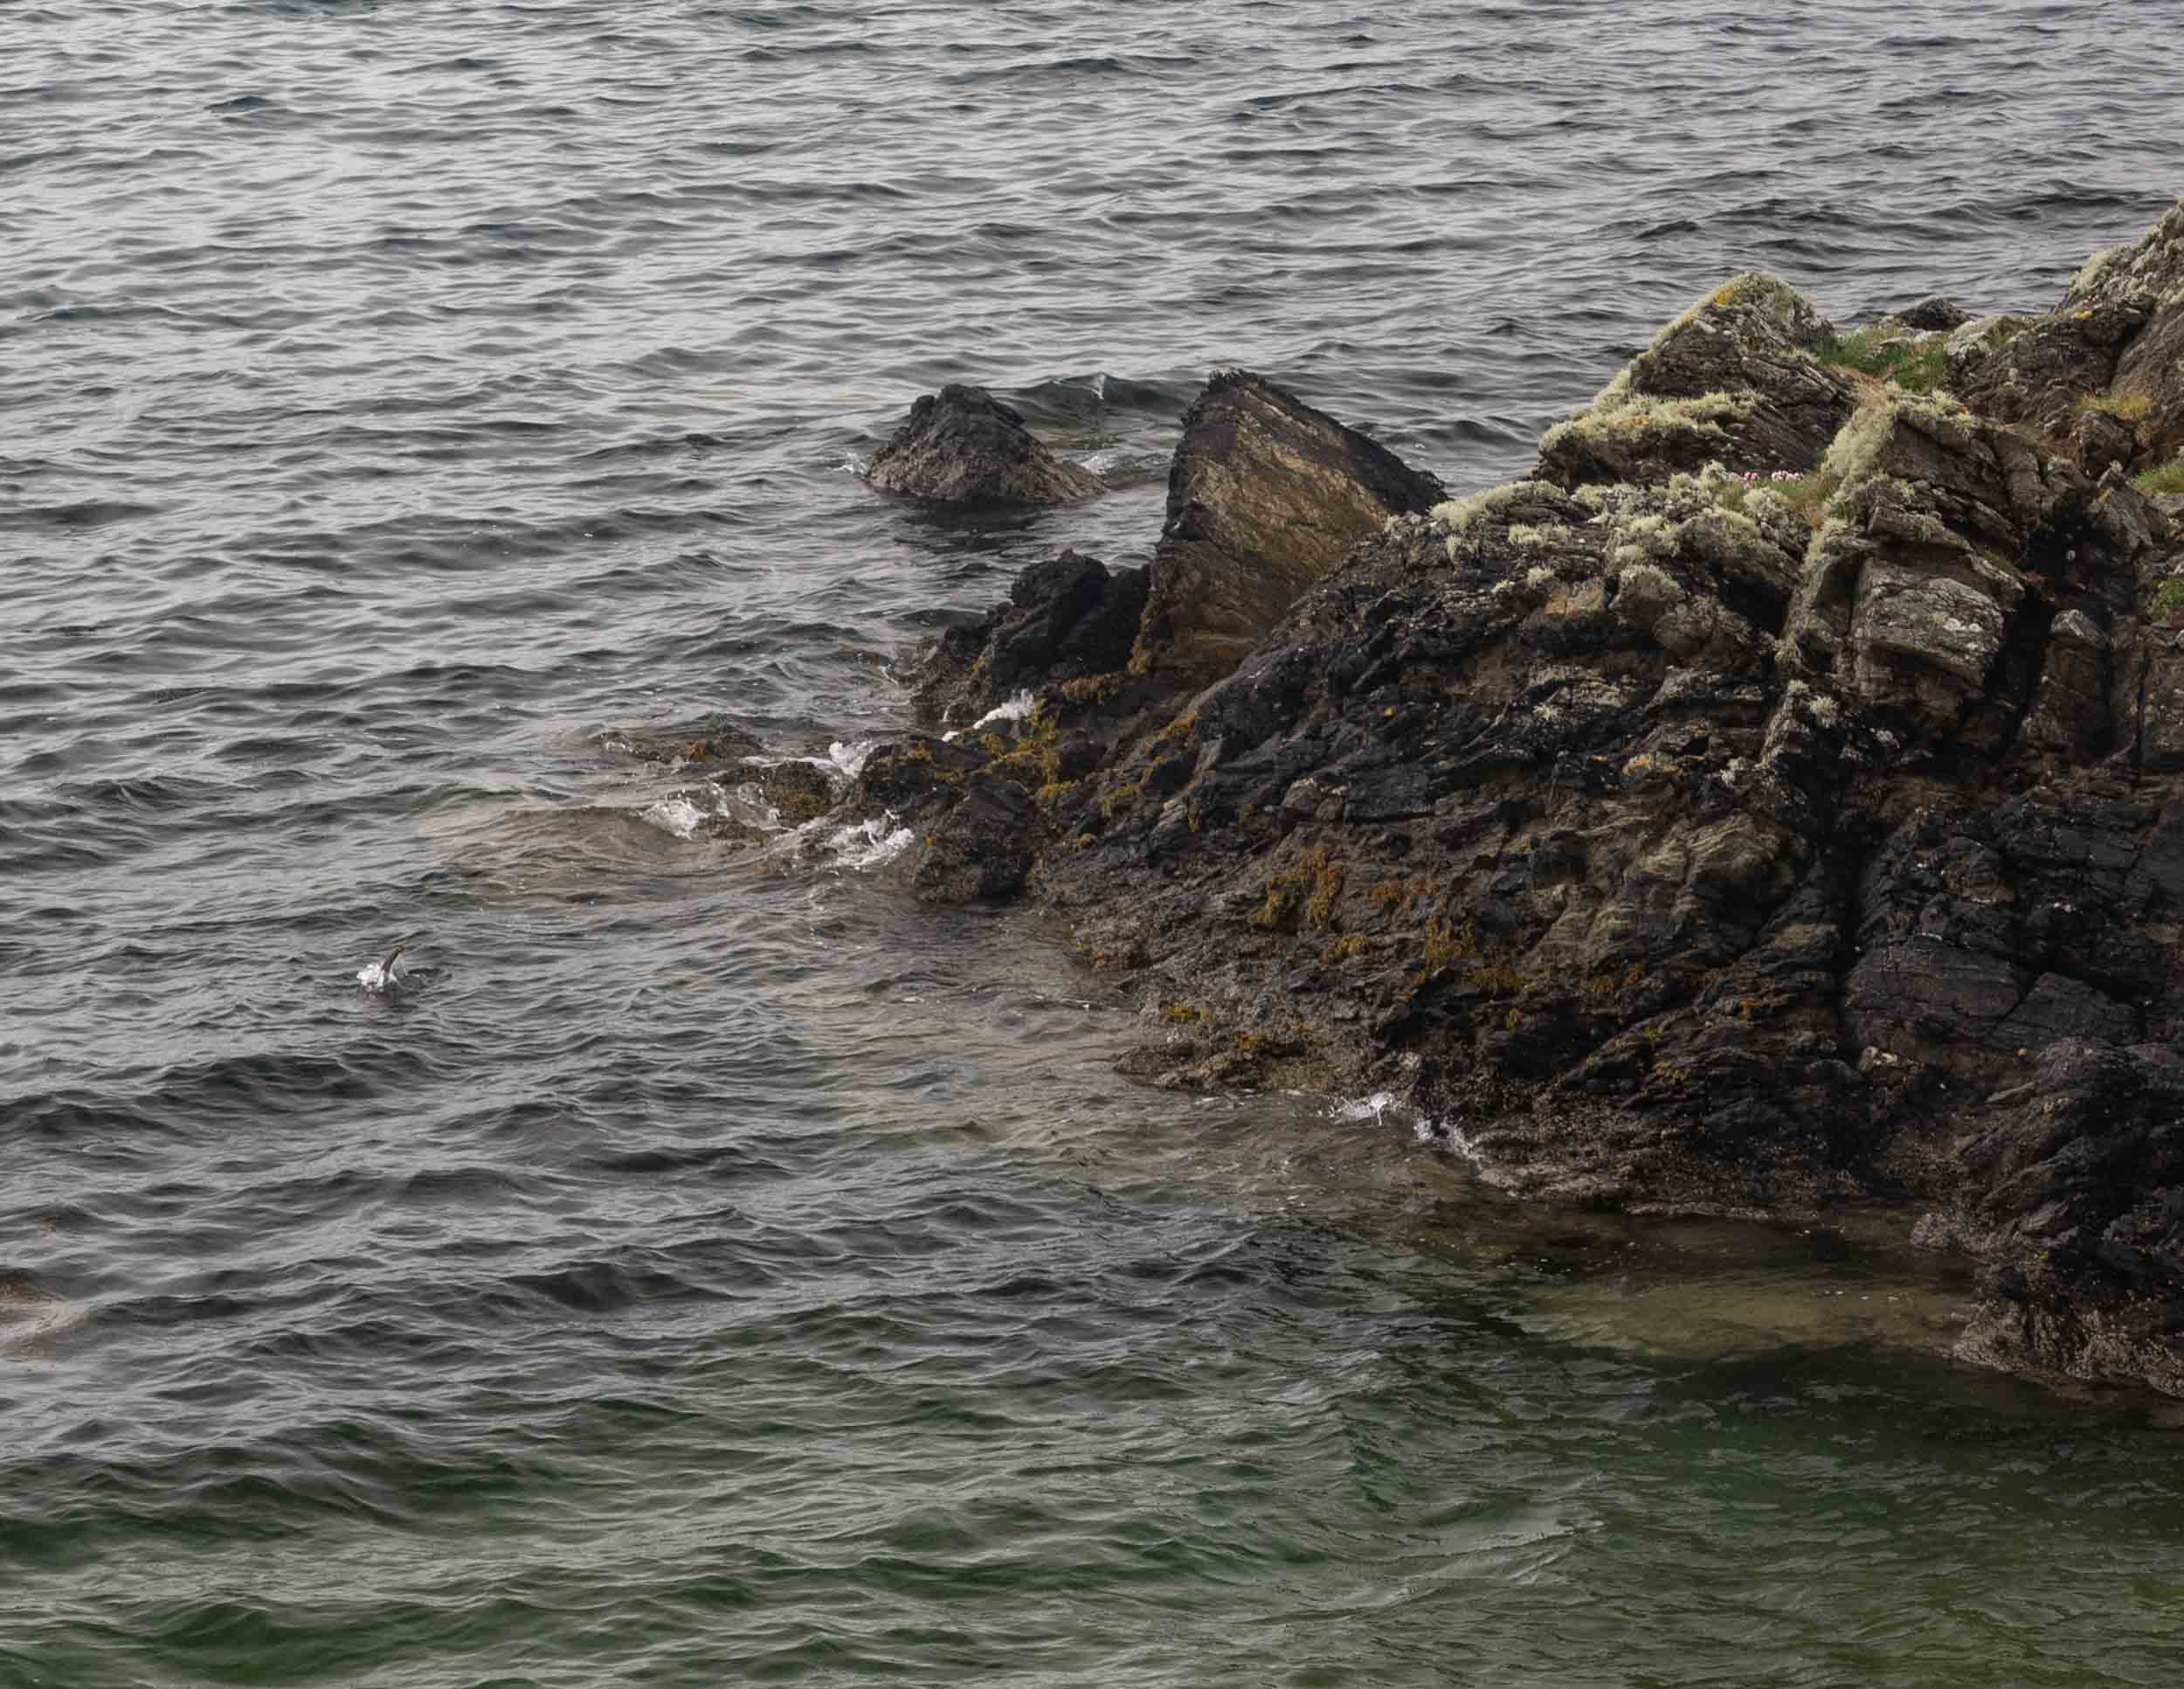 My photo of the otter diving - can you spot its tail?